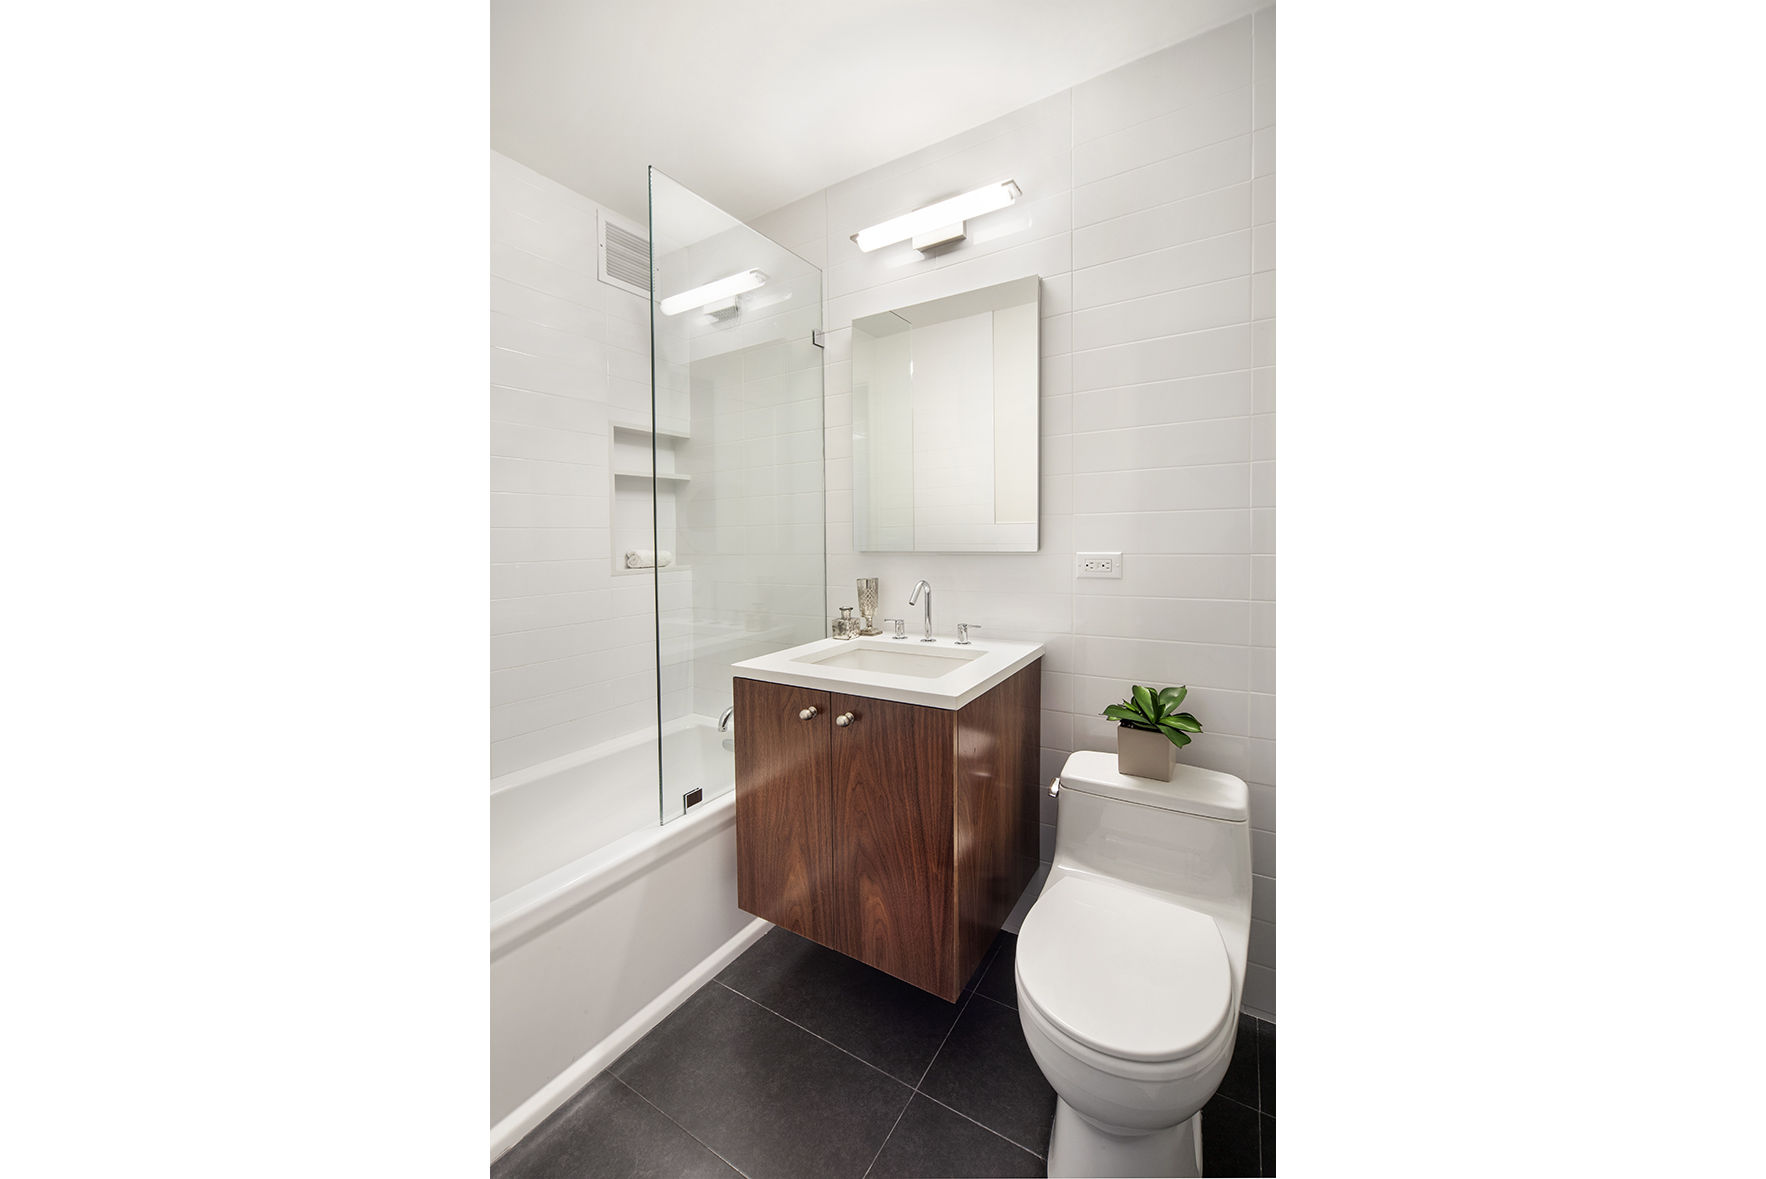 100 West 93rd Street, Apt 2J Photo 6 - WR-738612